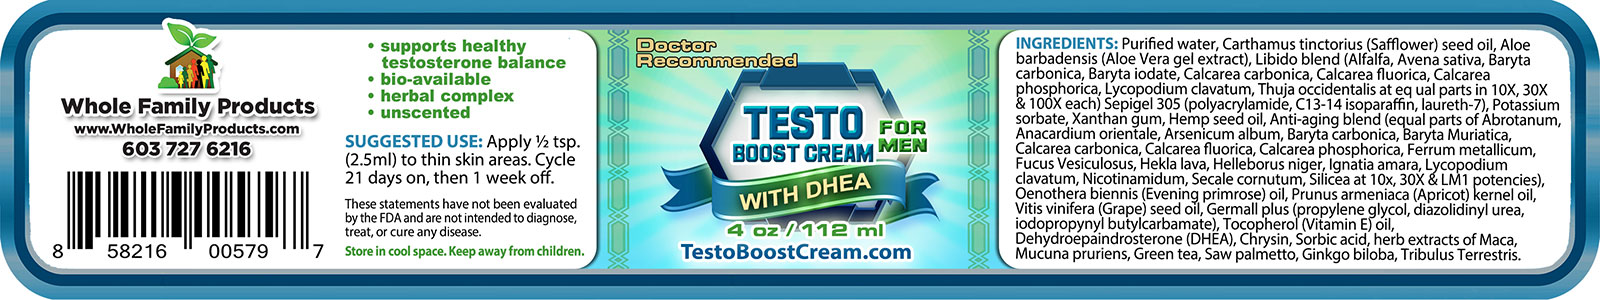 Testo Boost Cream for Men 4oz Jar Label